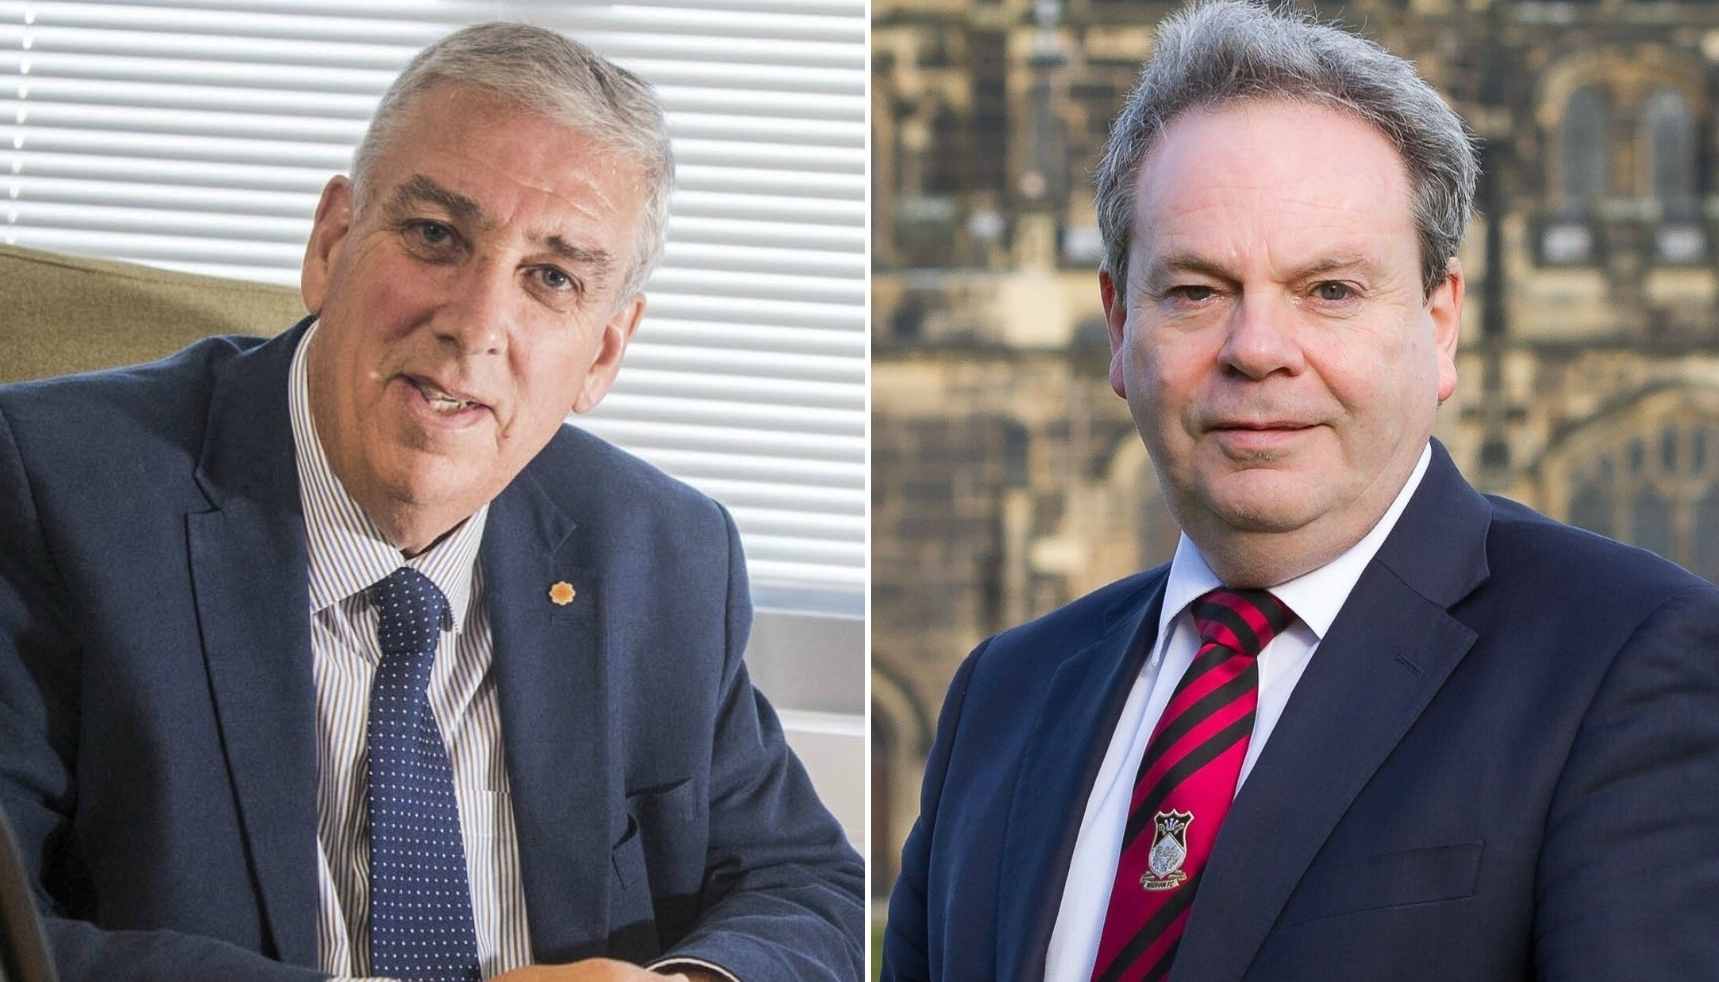 North Wales Police and Crime Commissioner Arfon Jones, left, has hit back at criticism by Wrexham MP Ian Lucas